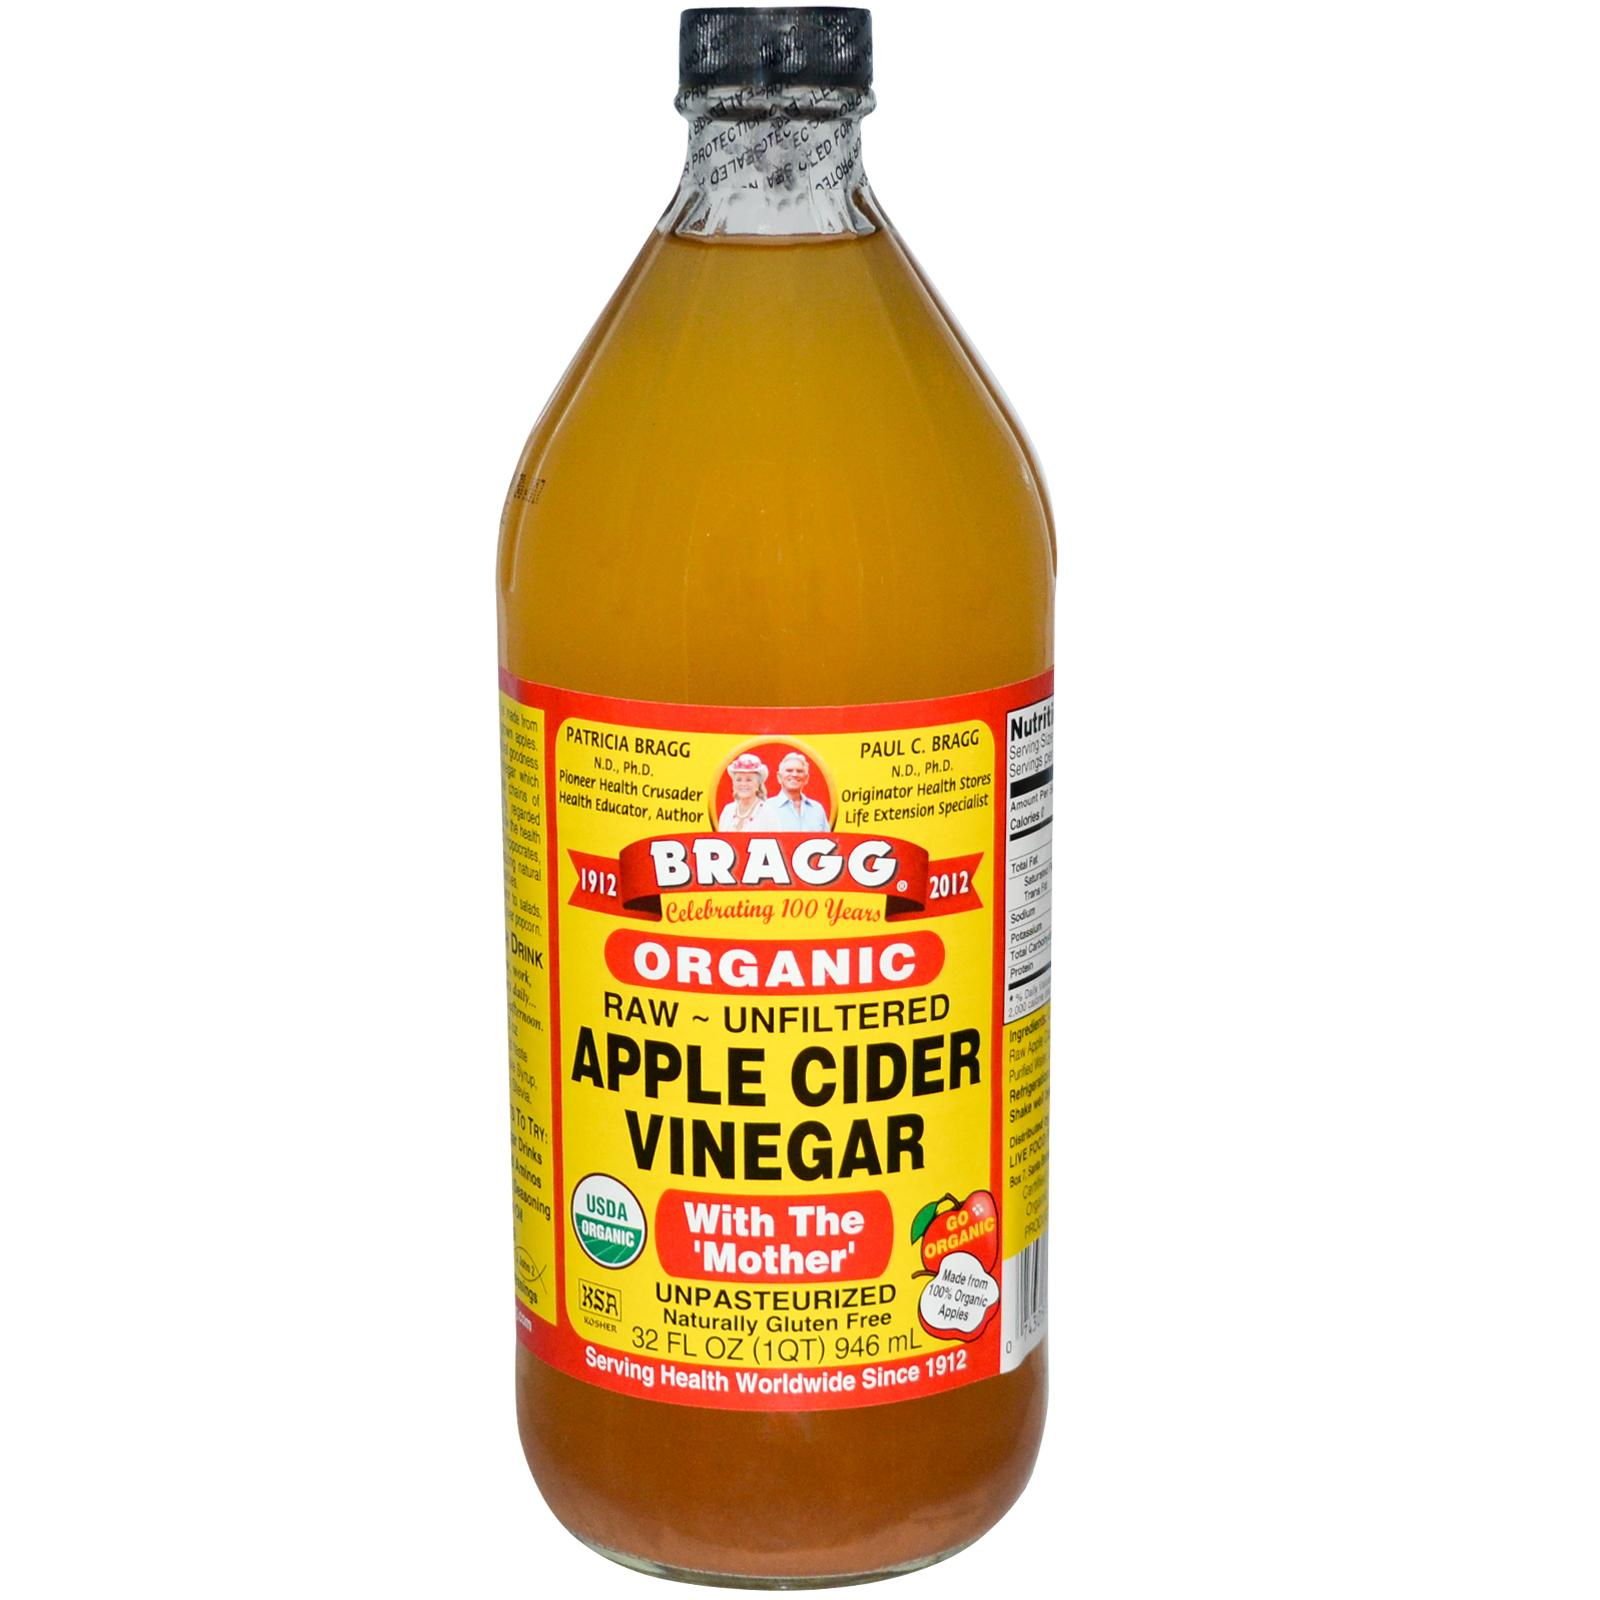 How To Get Rid Of Eczema - Apple Cider Vinegar